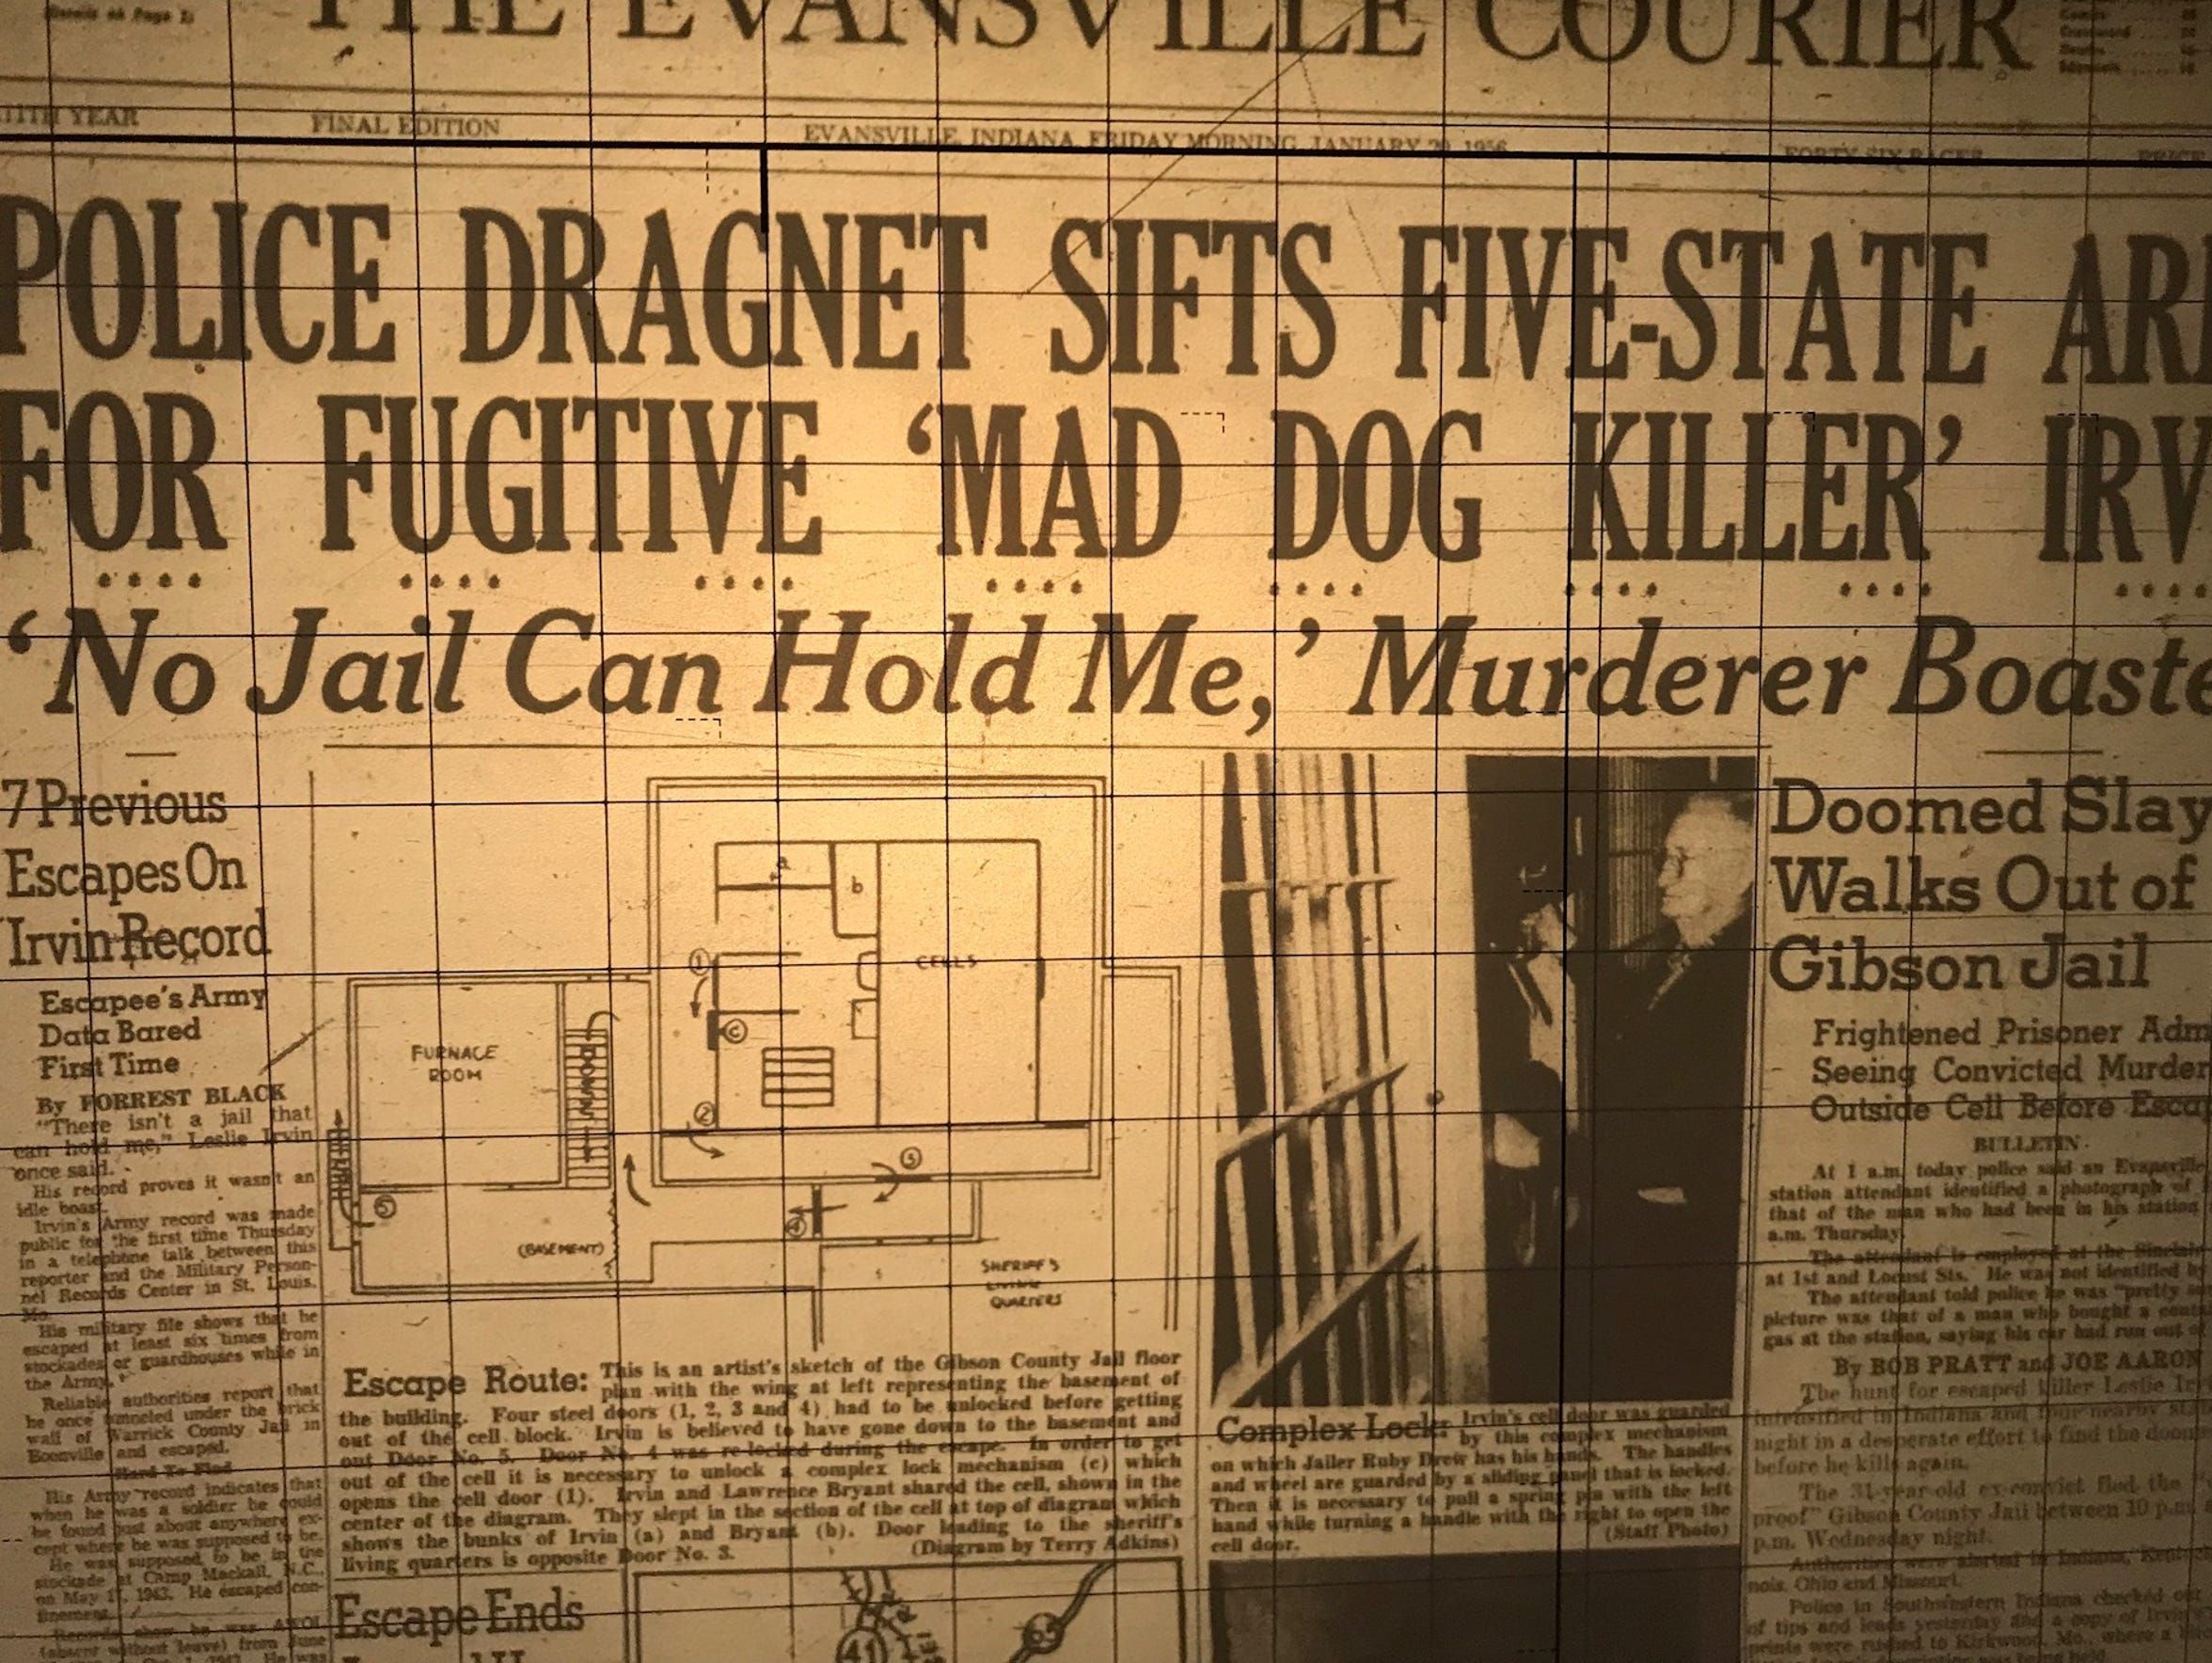 The front page of the Jan. 20, 1956 edition of the